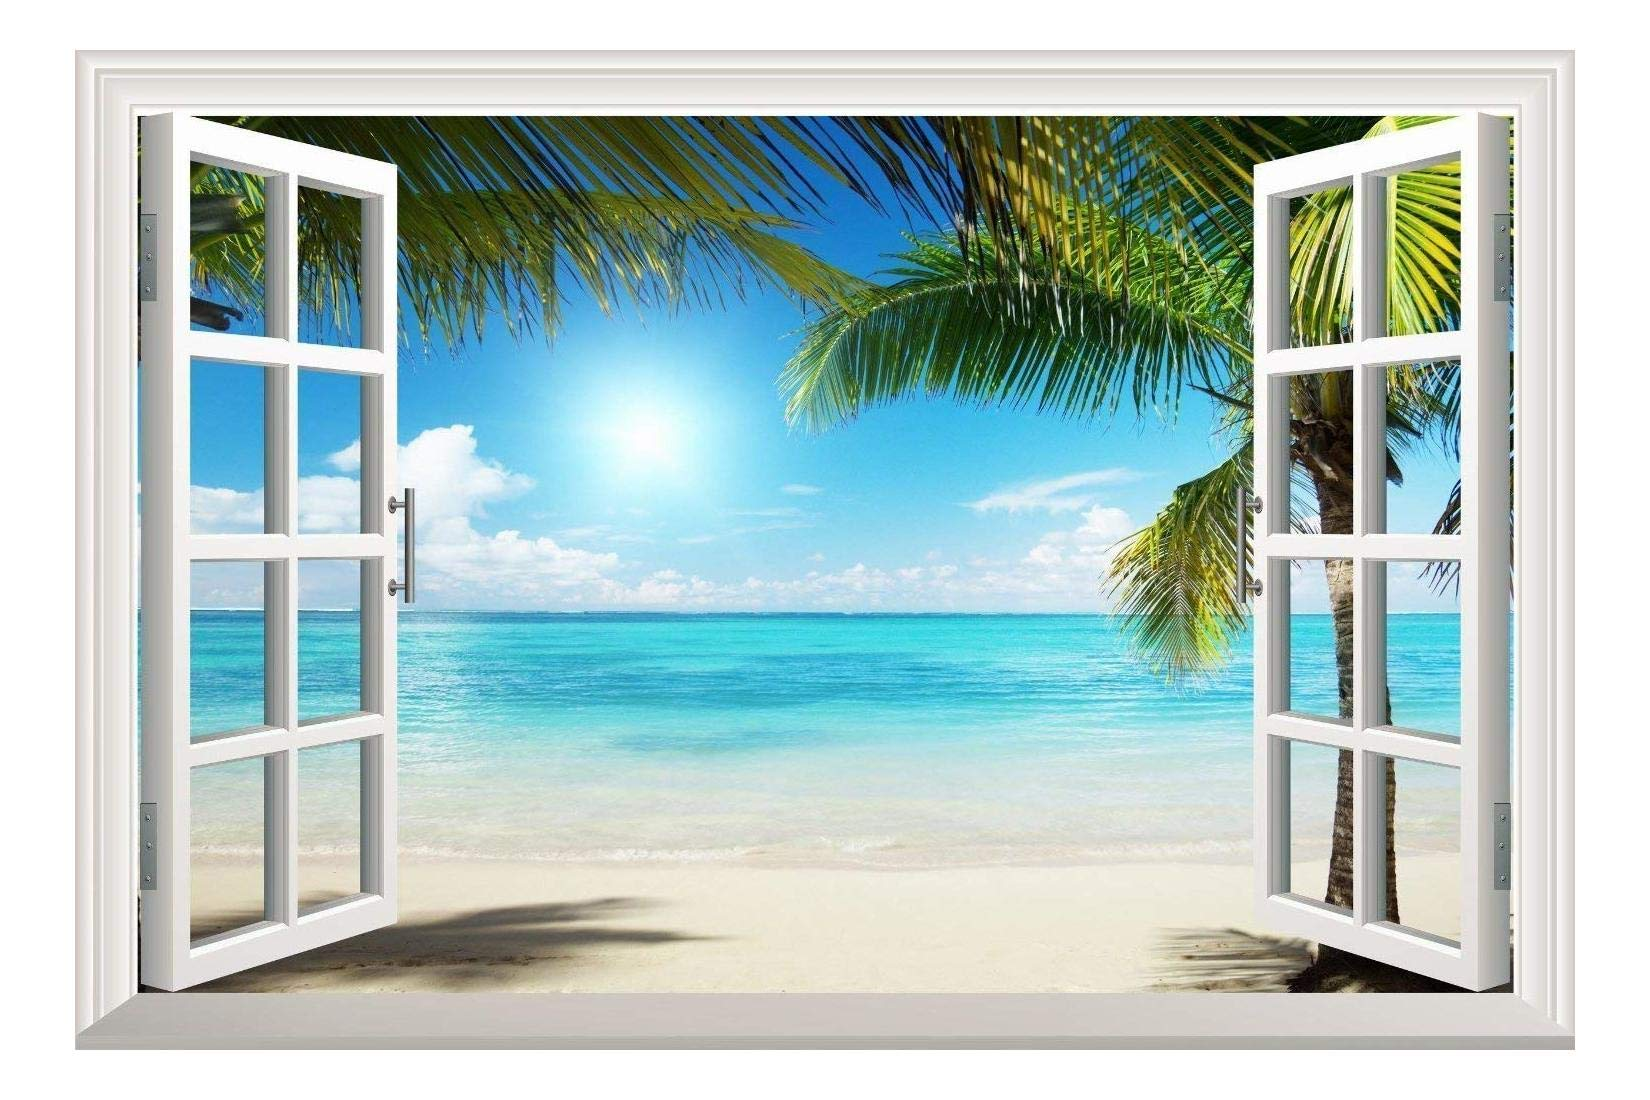 wall26 White Sand Beach with Palm Tree Open Window Wall Mural, Removable Sticker, Home Decor - 24x32 inches by wall26 (Image #1)